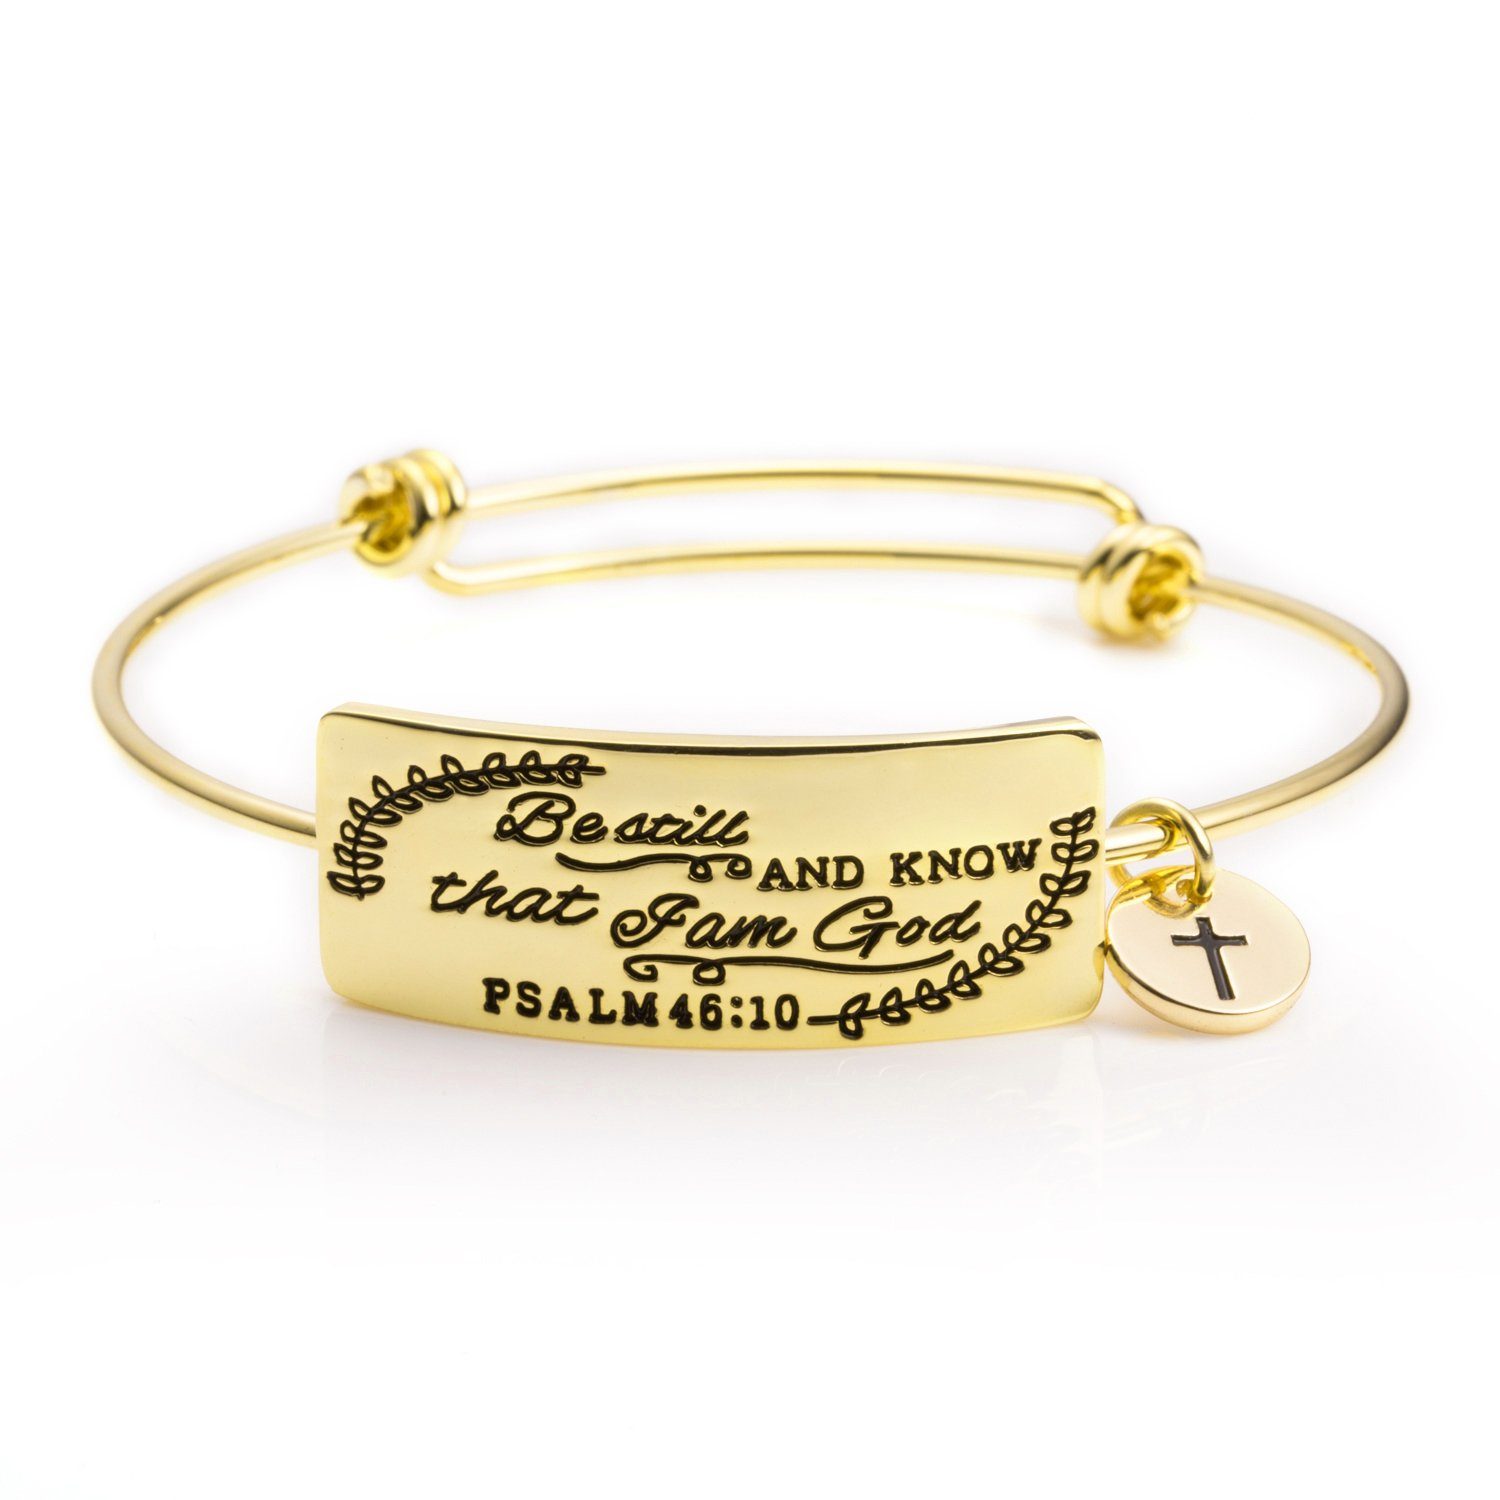 Inspirational Bible Verse Christian Bangle Bracelets Jewelry Gift for Women Engraved Encourage...